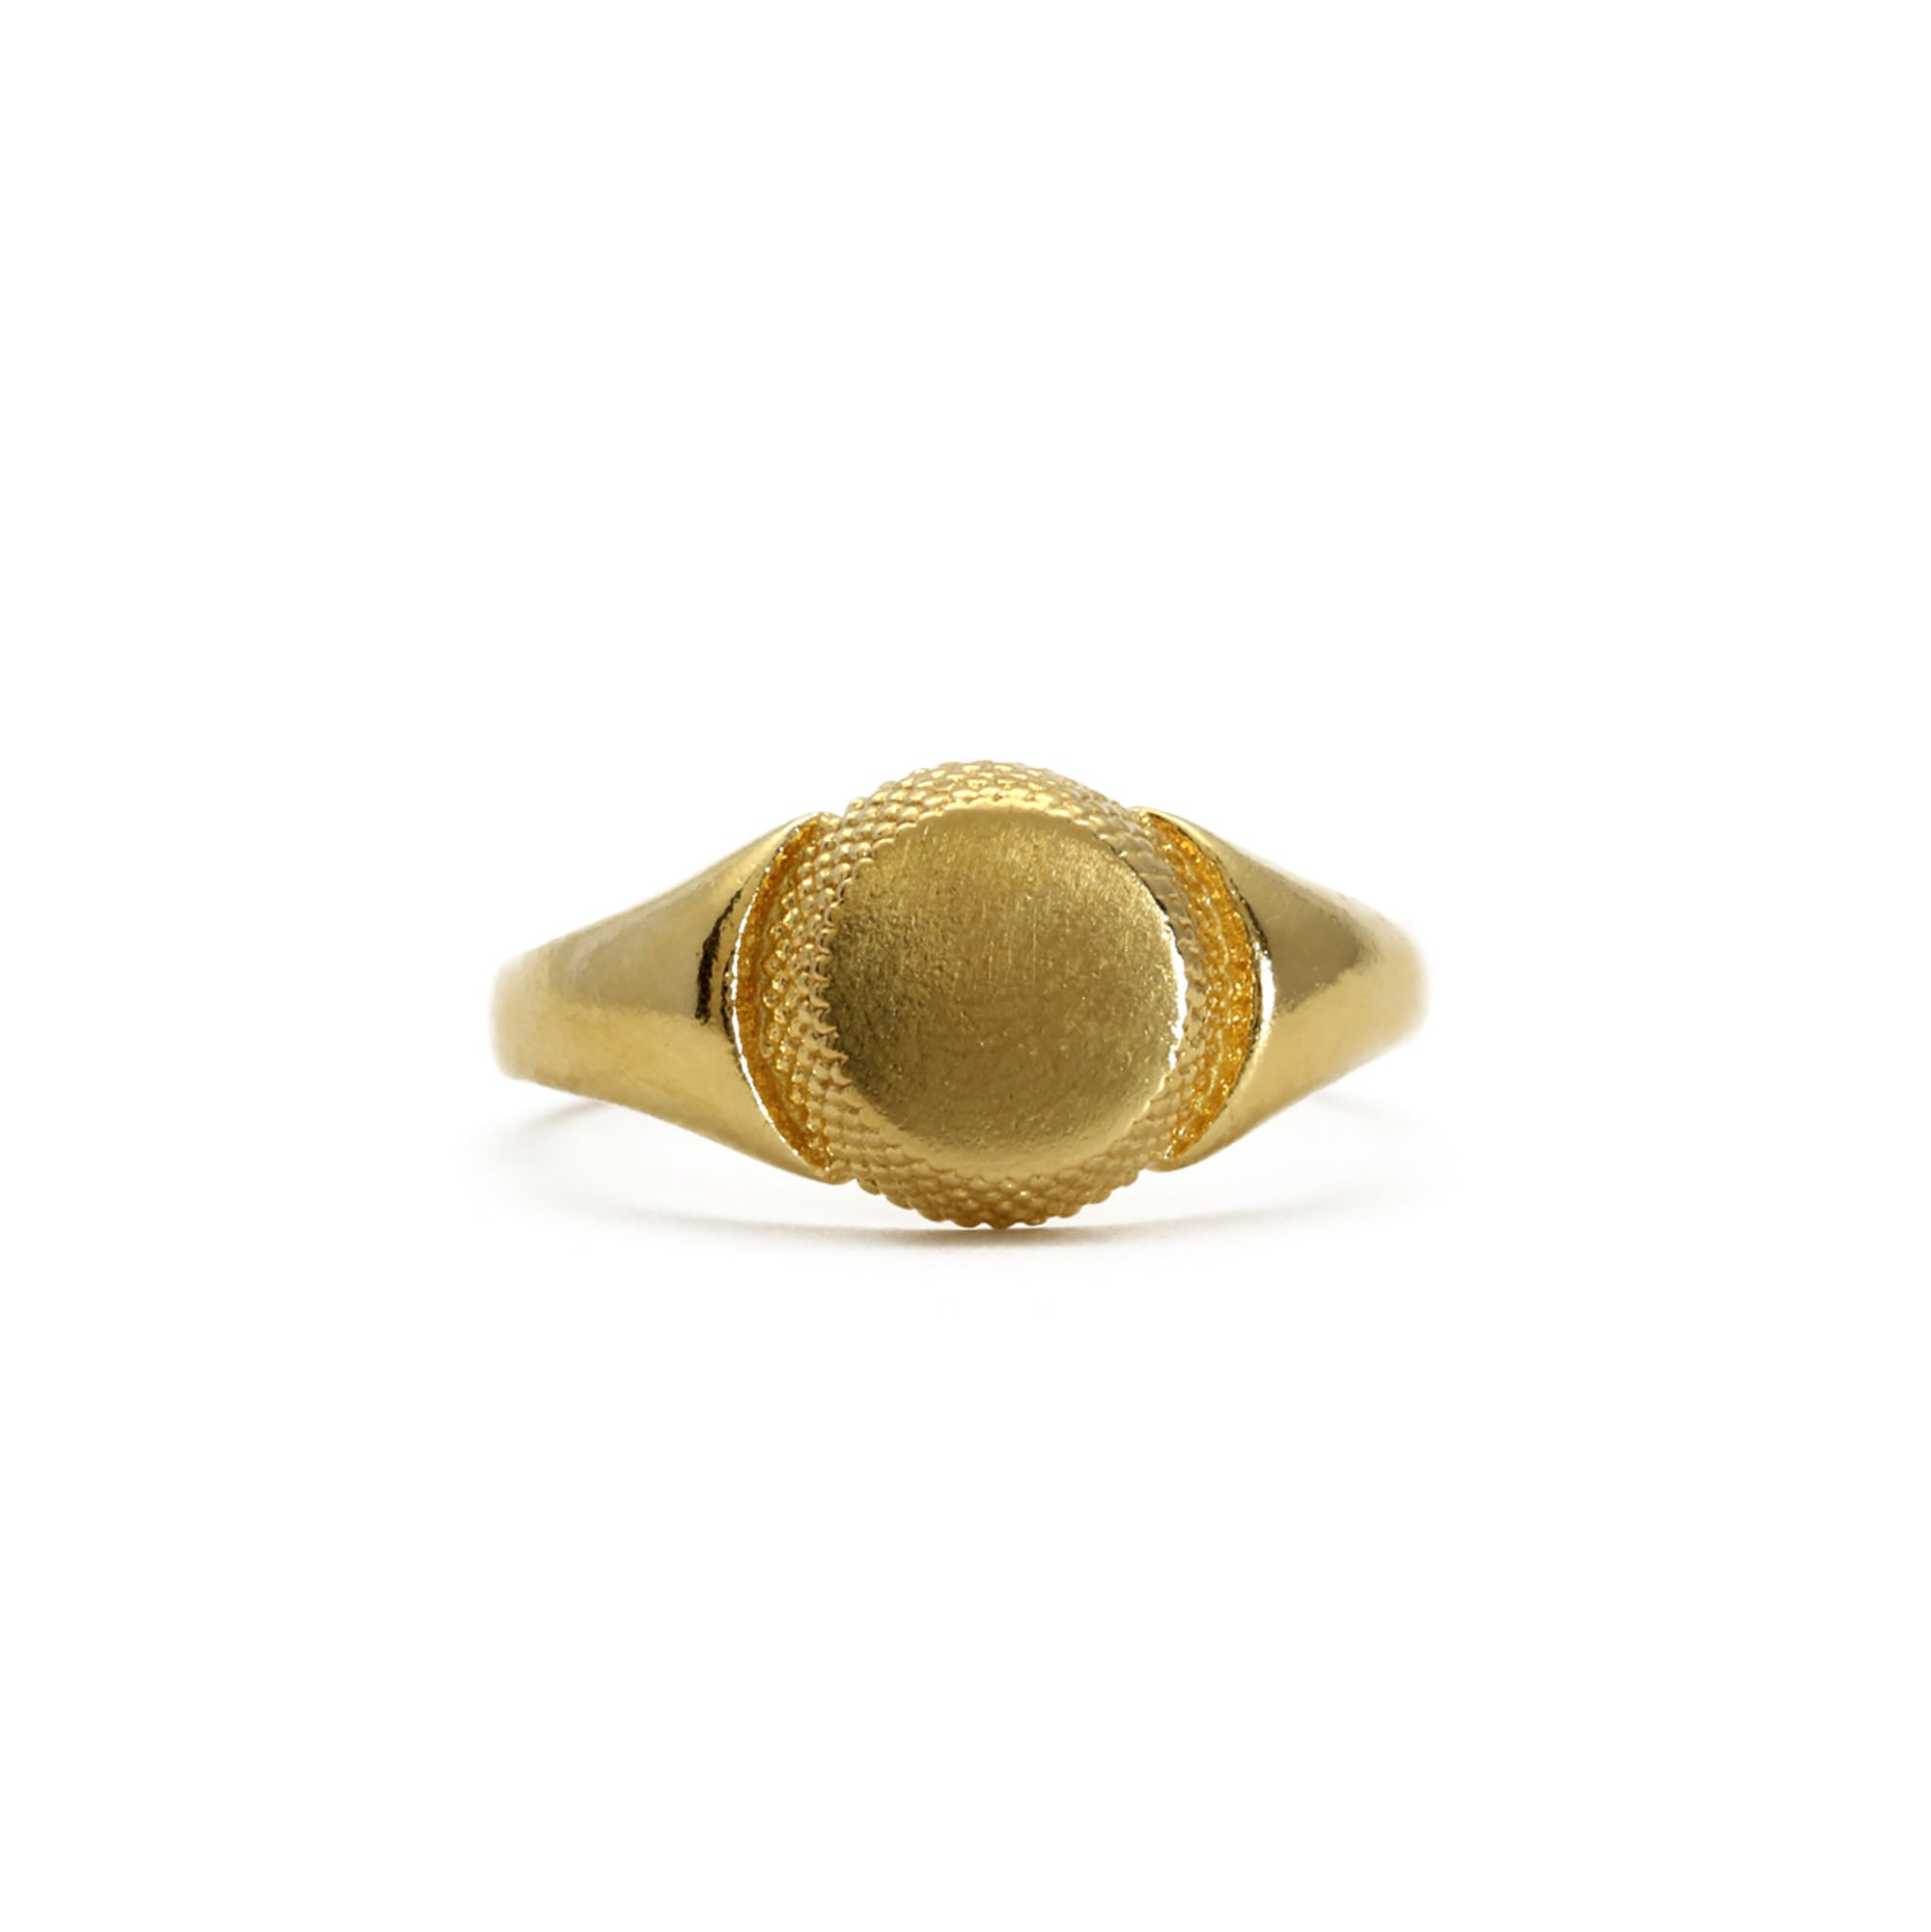 Paragon Yellow Gold Signet Ring